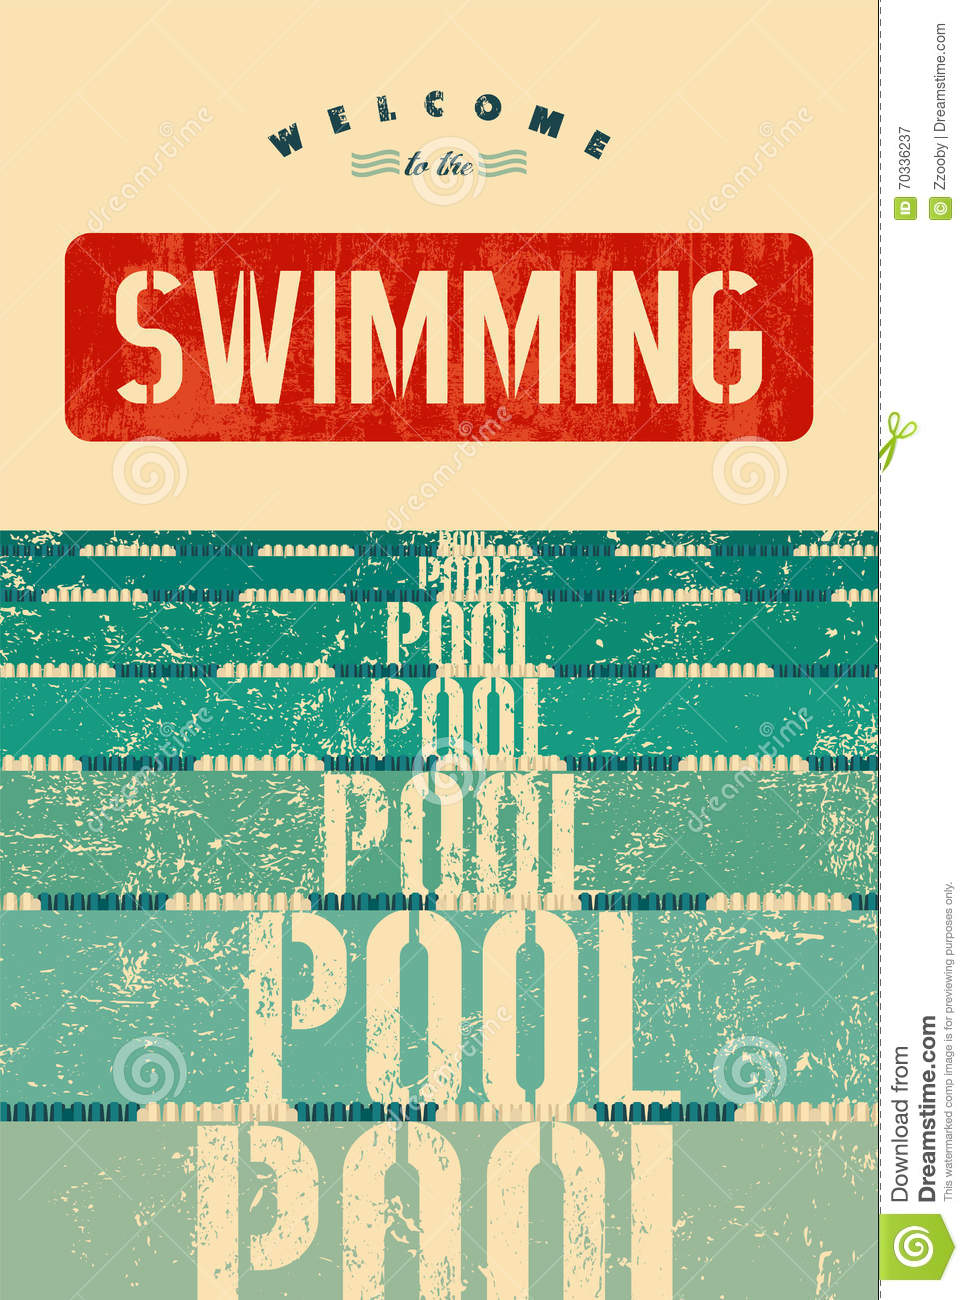 Vintage swimming posters